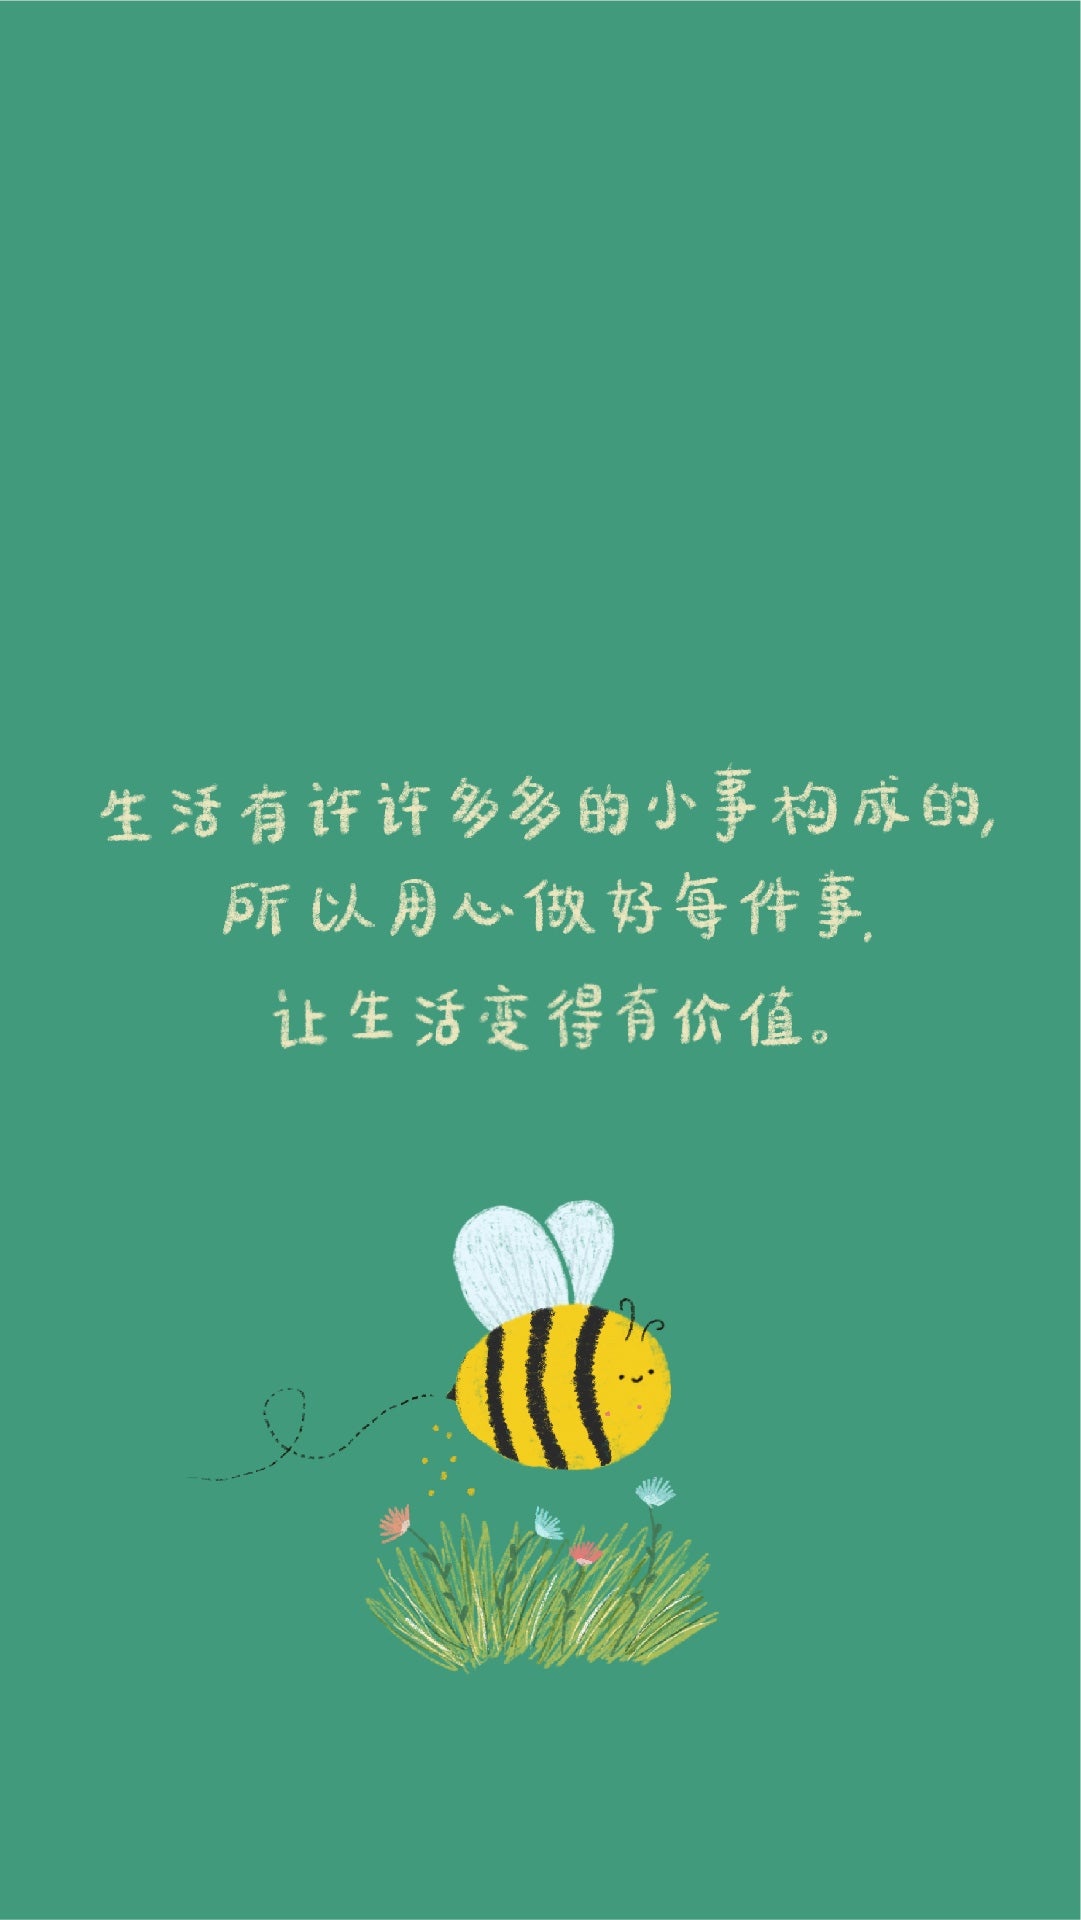 phone wallpaper of a digital illustration of a chinese motivational saying about focusing in life and doing the best you can along with a bee hovering above a bunch of flowers